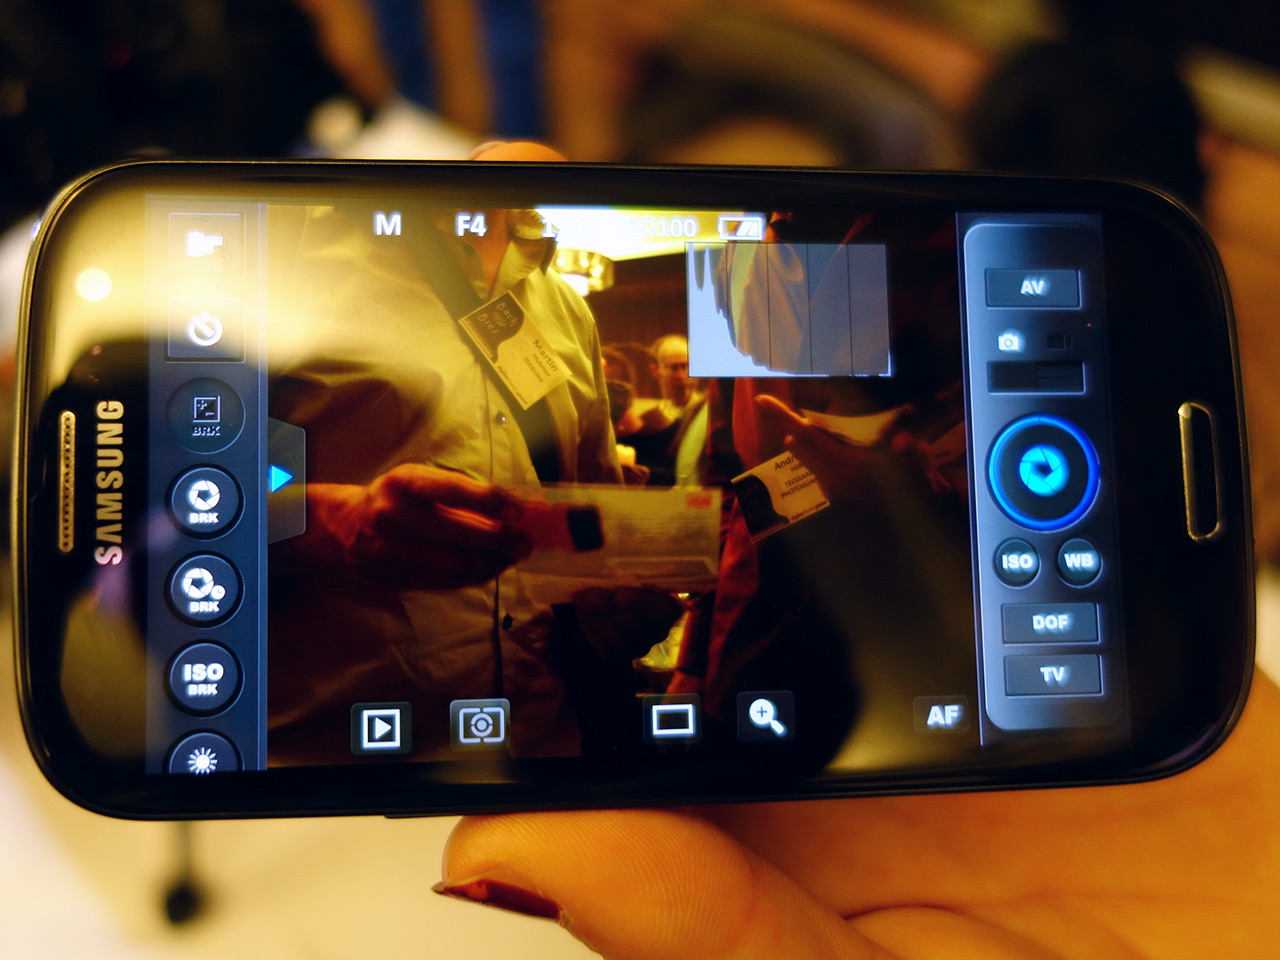 Weye Feye connects your DSLR and smartphone: Digital